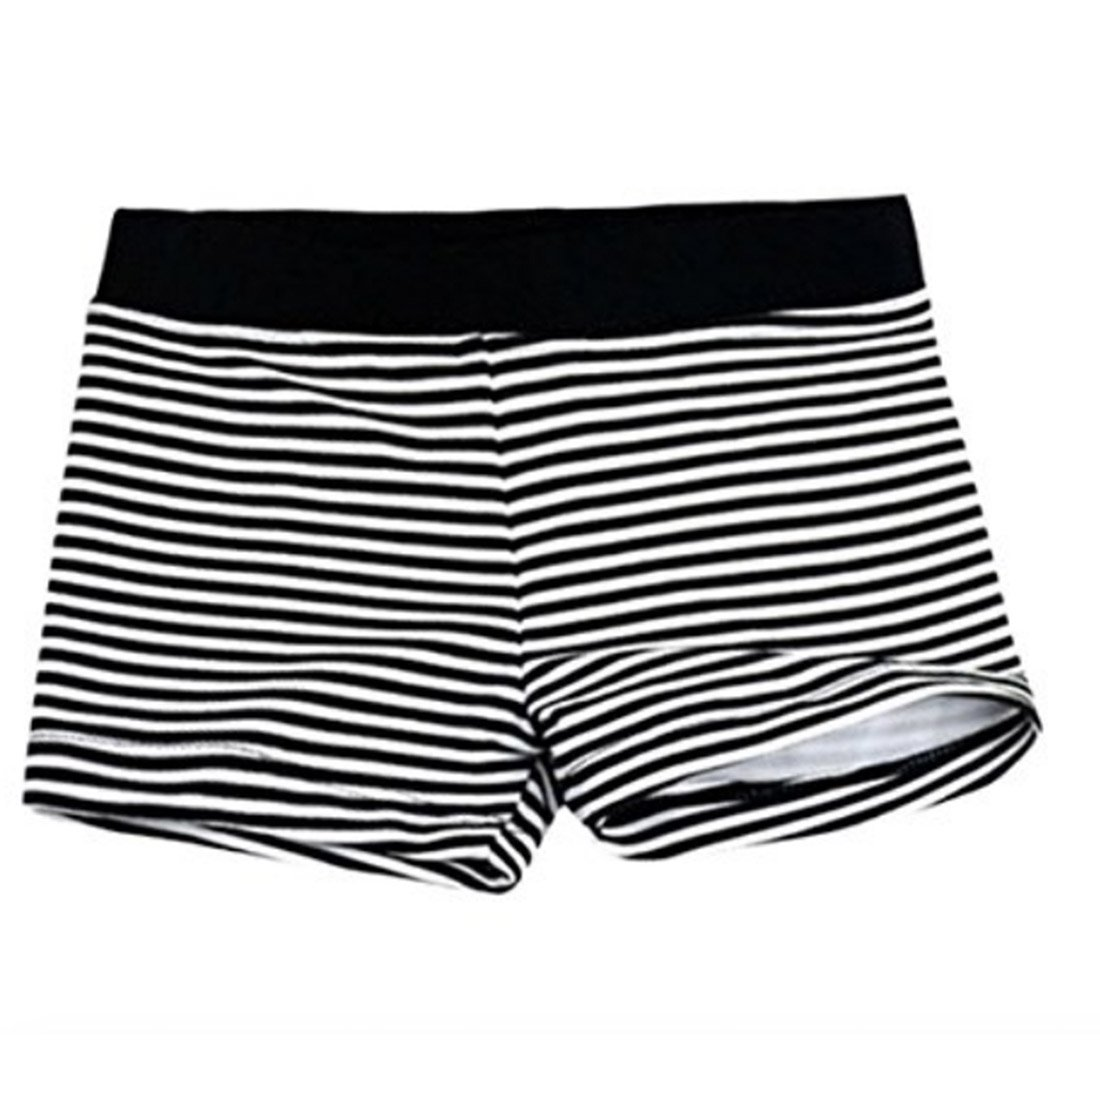 Neal LINK Kids Boys Swimming Trunks Swim Boxer Shorts Beach Bathing Suit Underpants Stripe (Stripe Black, Medium 2-3 Years)